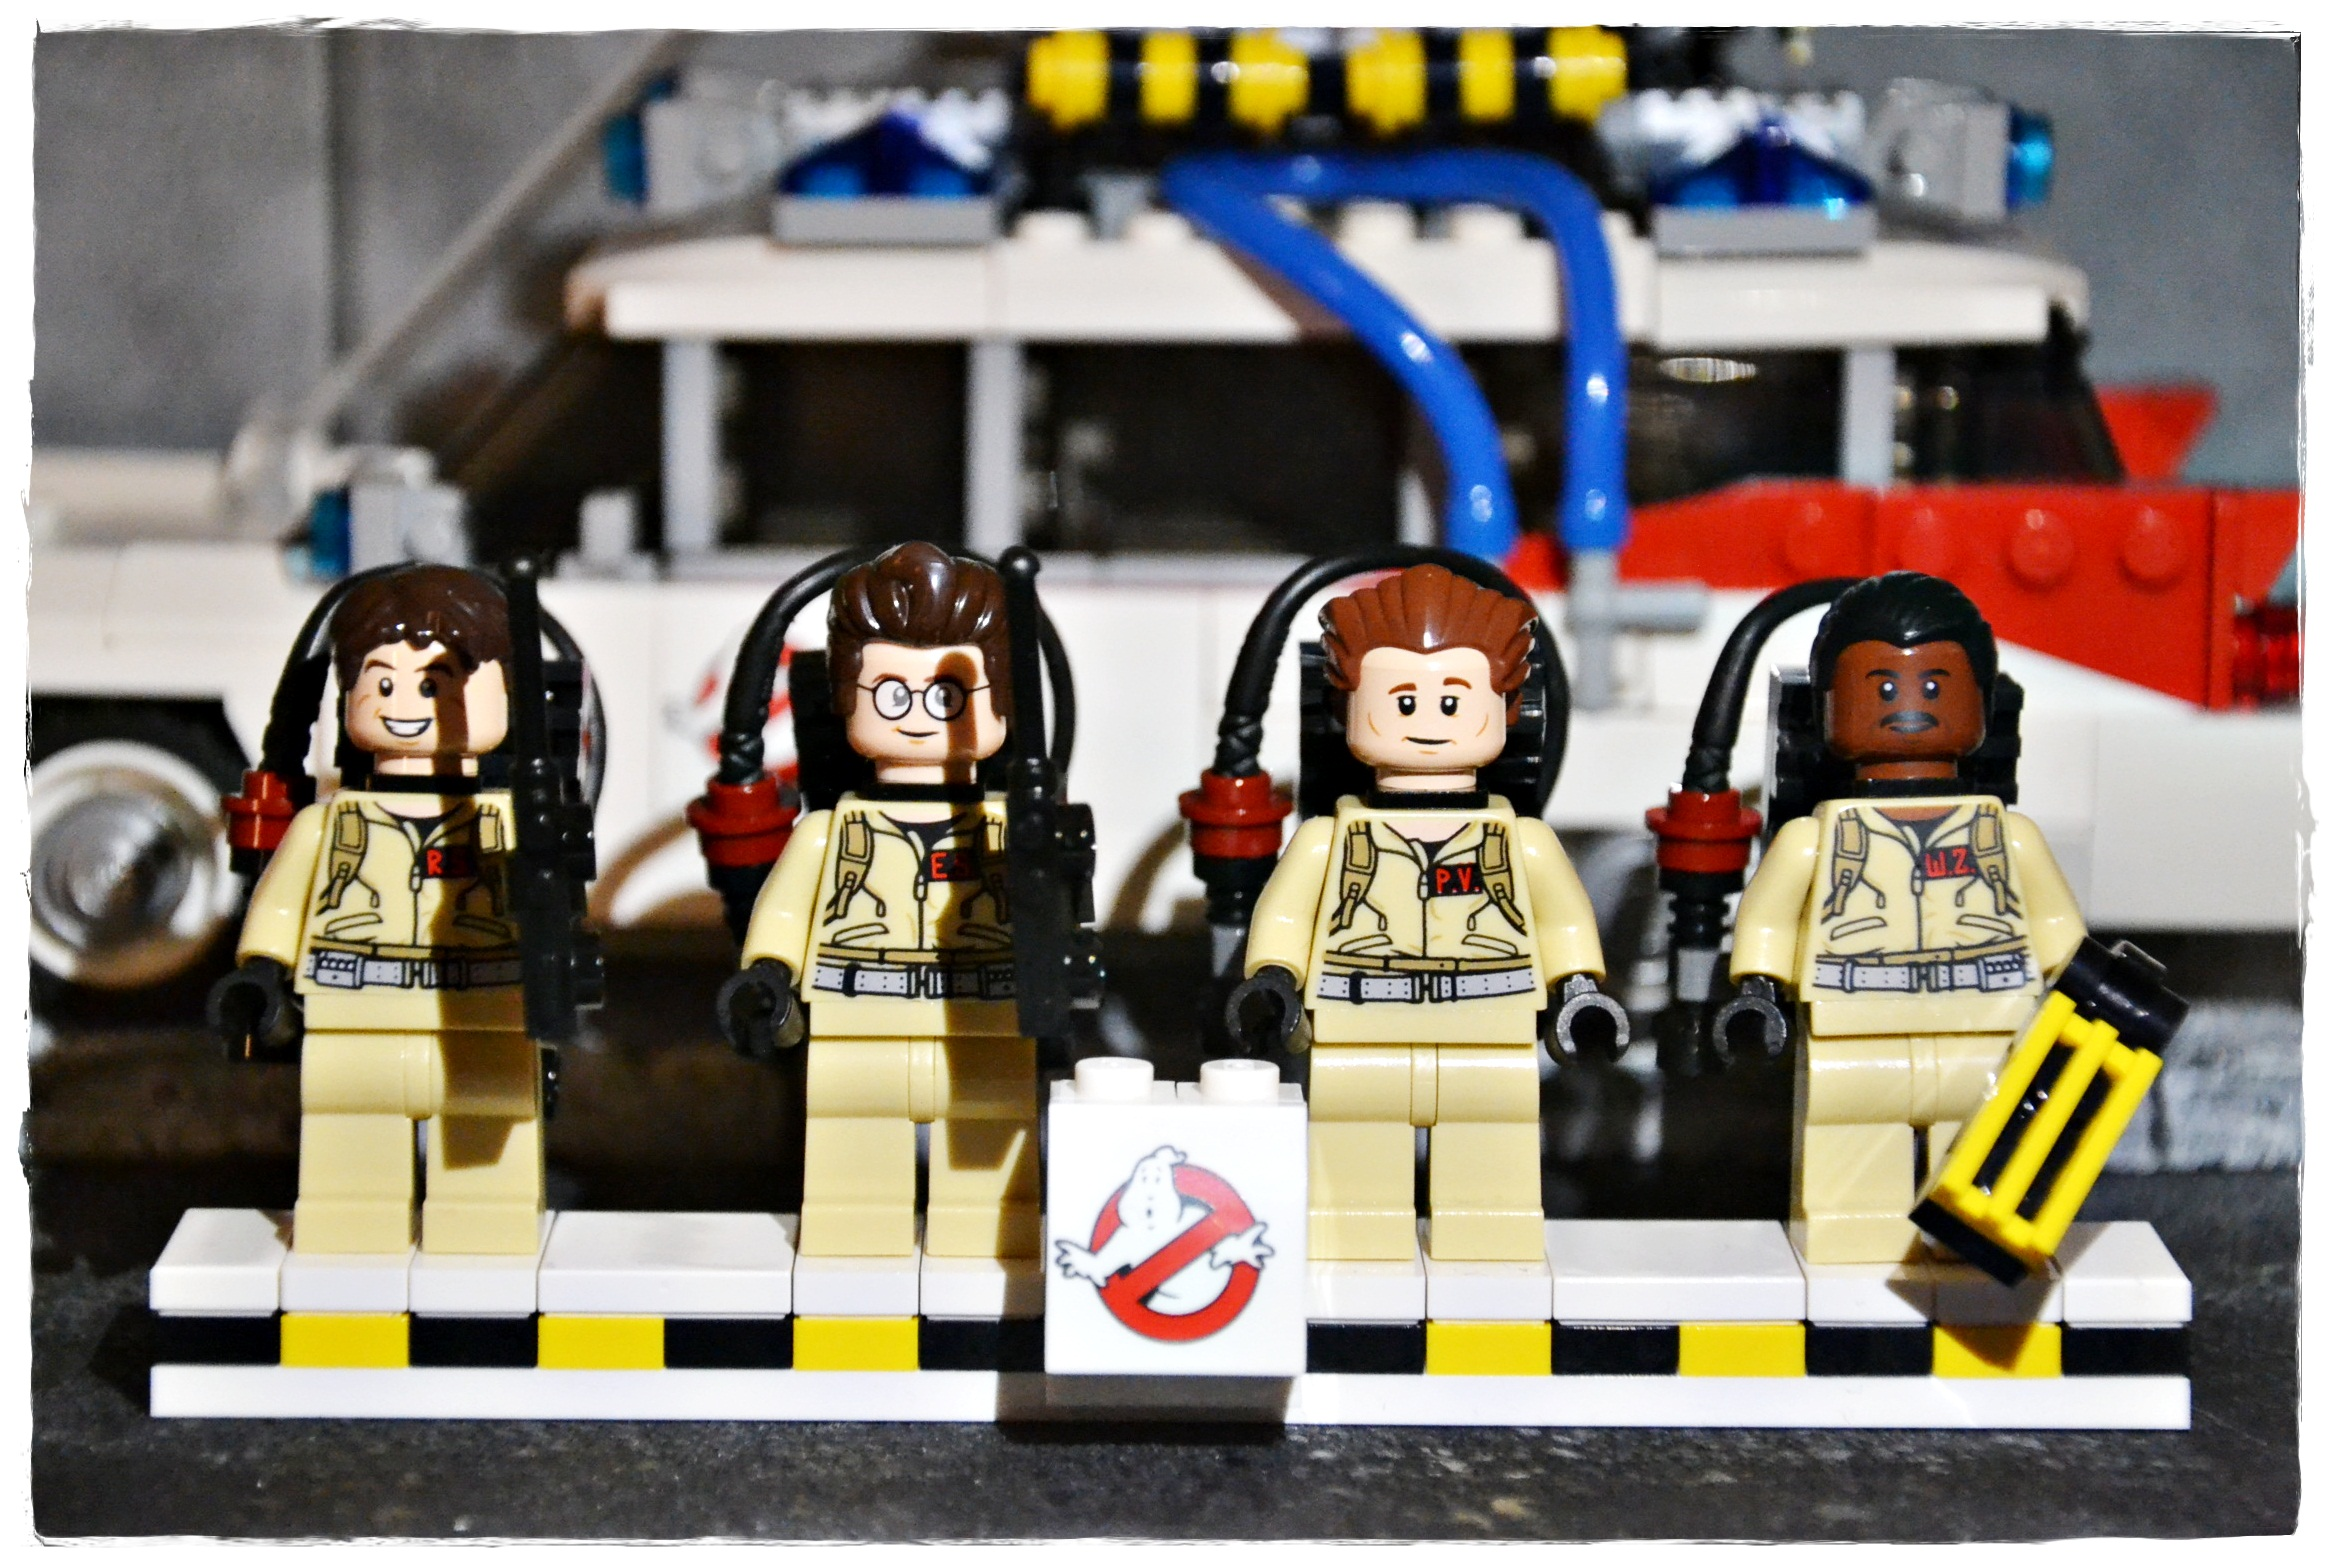 LEGO Ideas - Ghostbusters Ecto-1 set